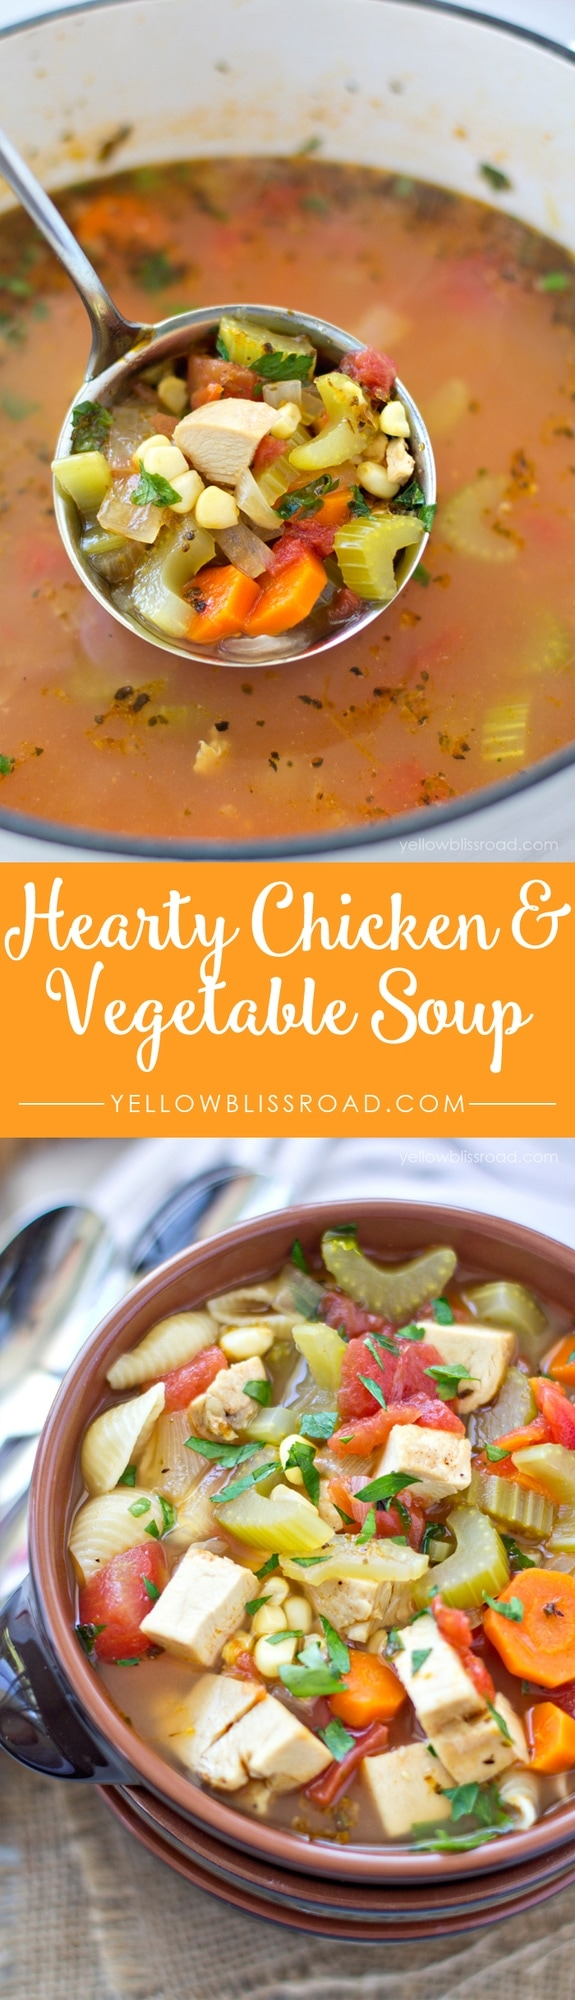 Hearty Chicken and Vegetable Soup with Noodles